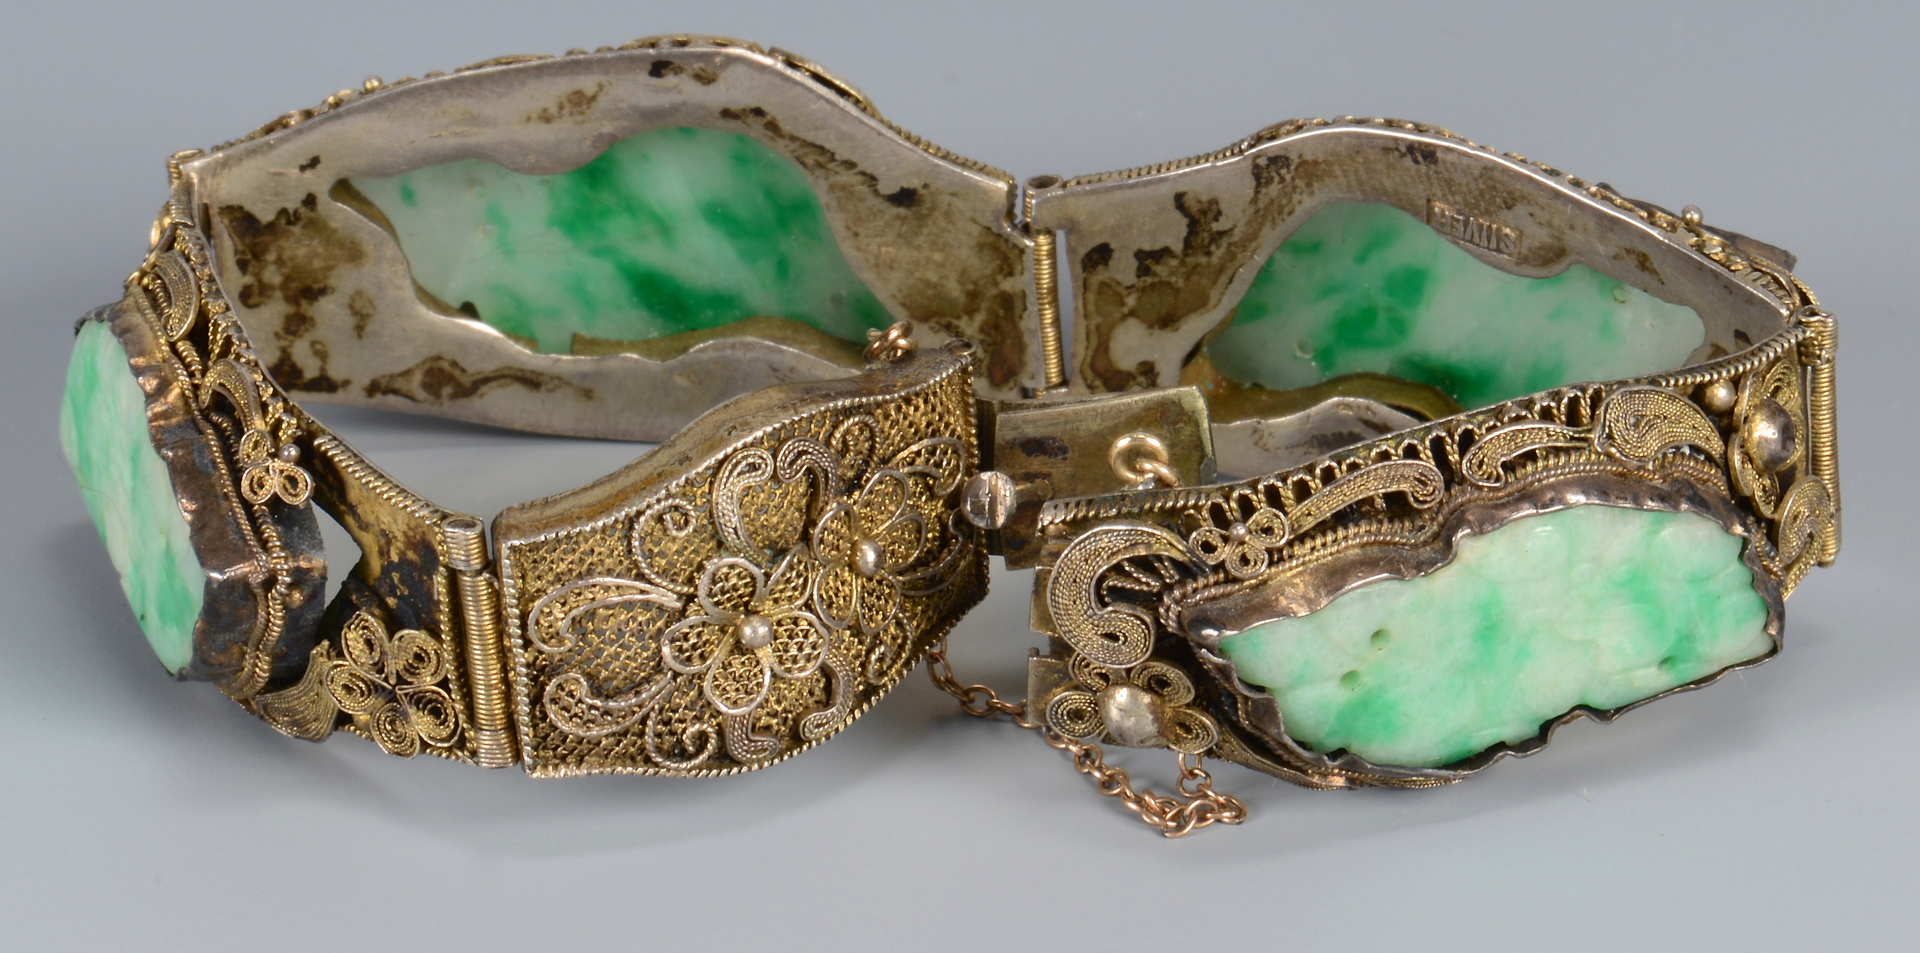 Lot 3594153 Gold and Jade Jewelry with dragon design